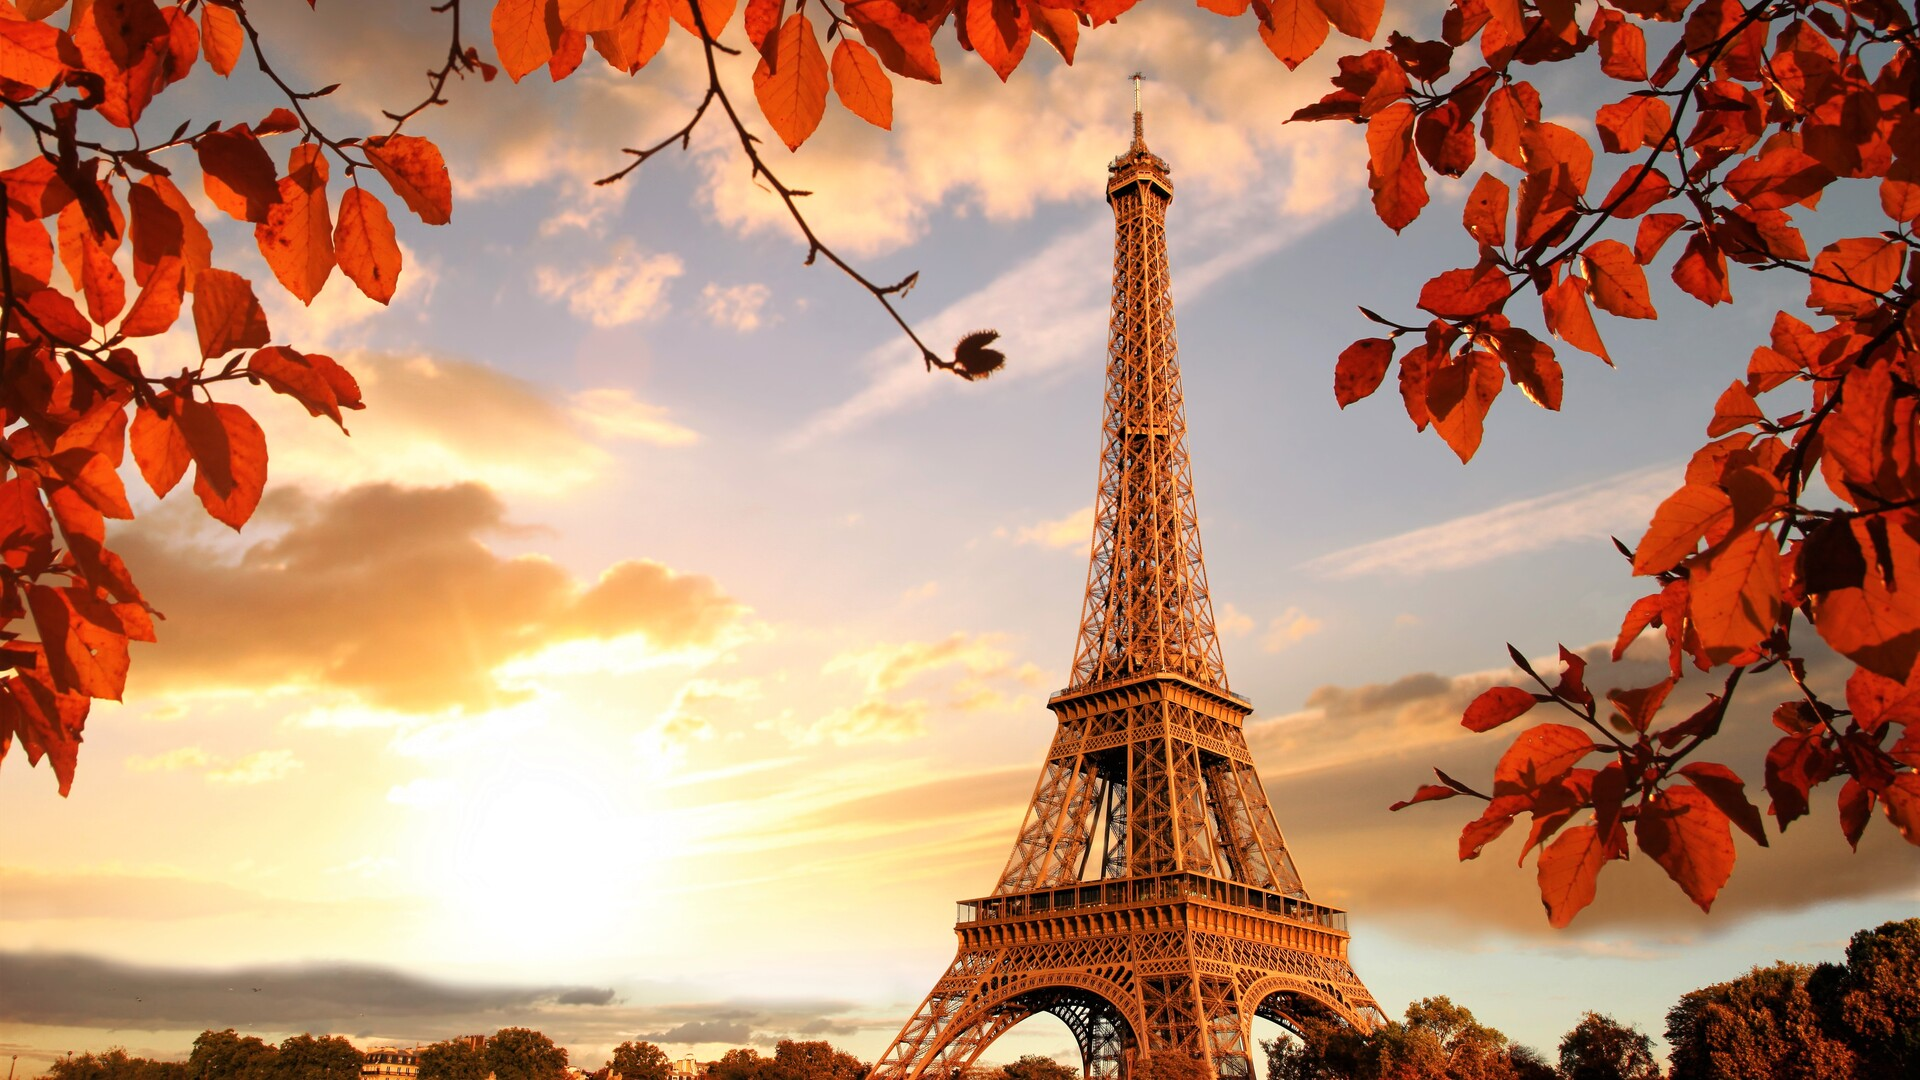 1920x1080 Eiffel Tower Autumn Season 4k 5k Laptop Full Hd 1080p Hd